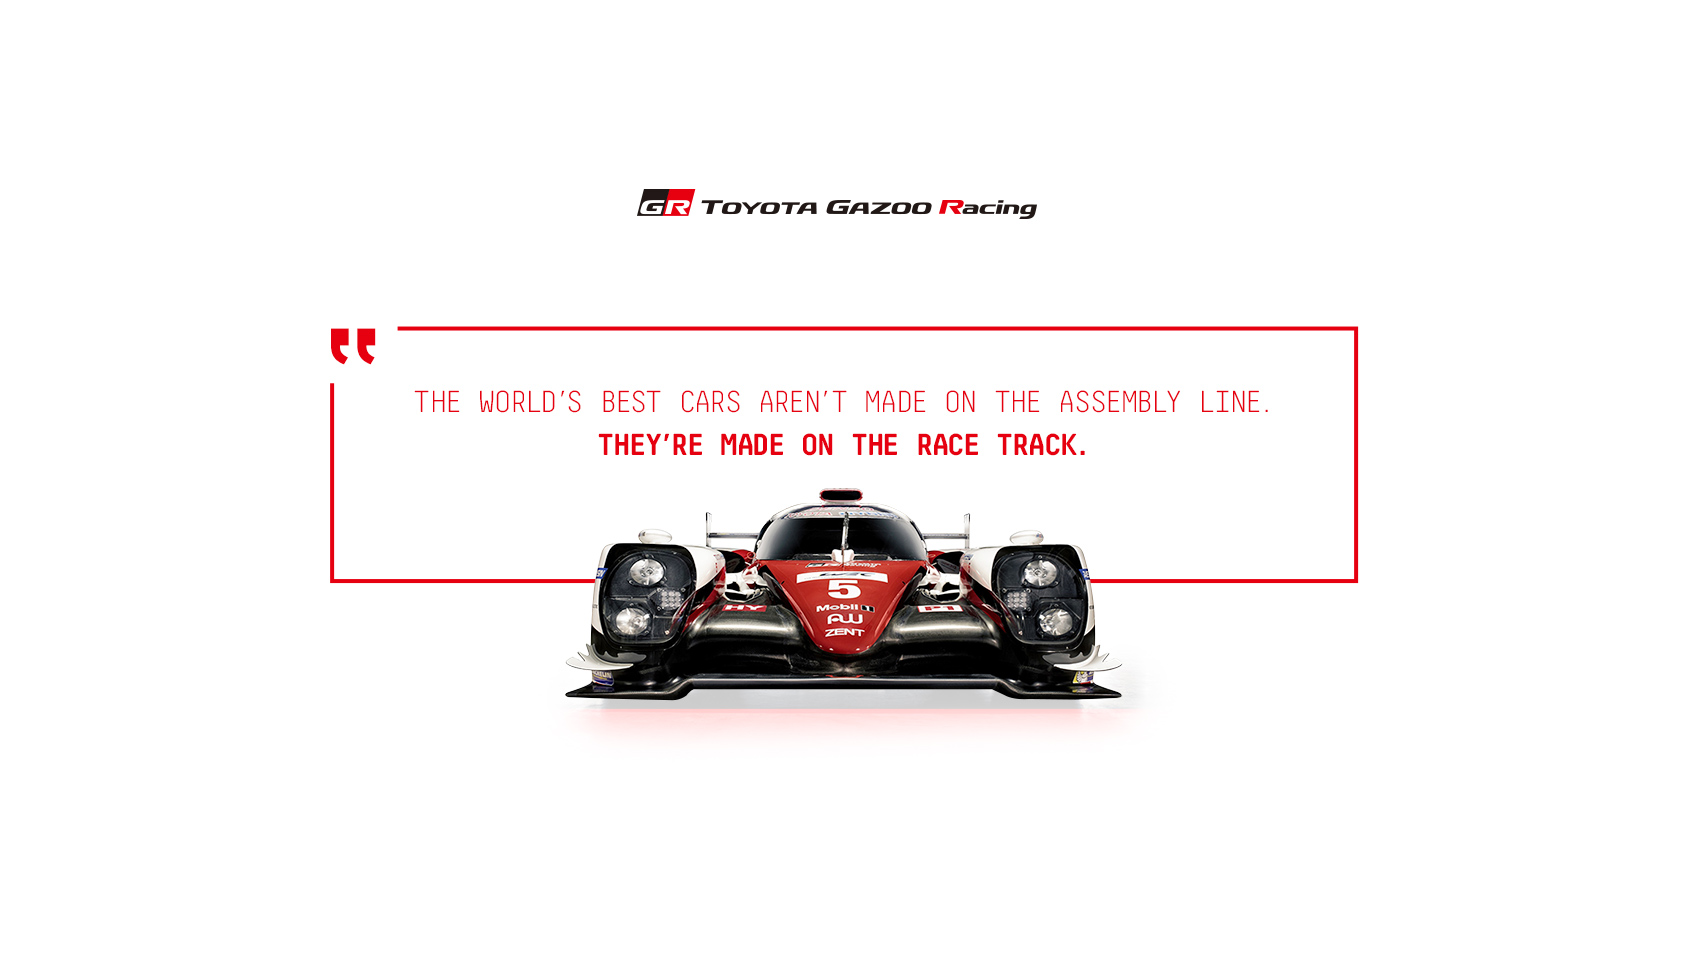 Toyota Gazoo Racing King Design